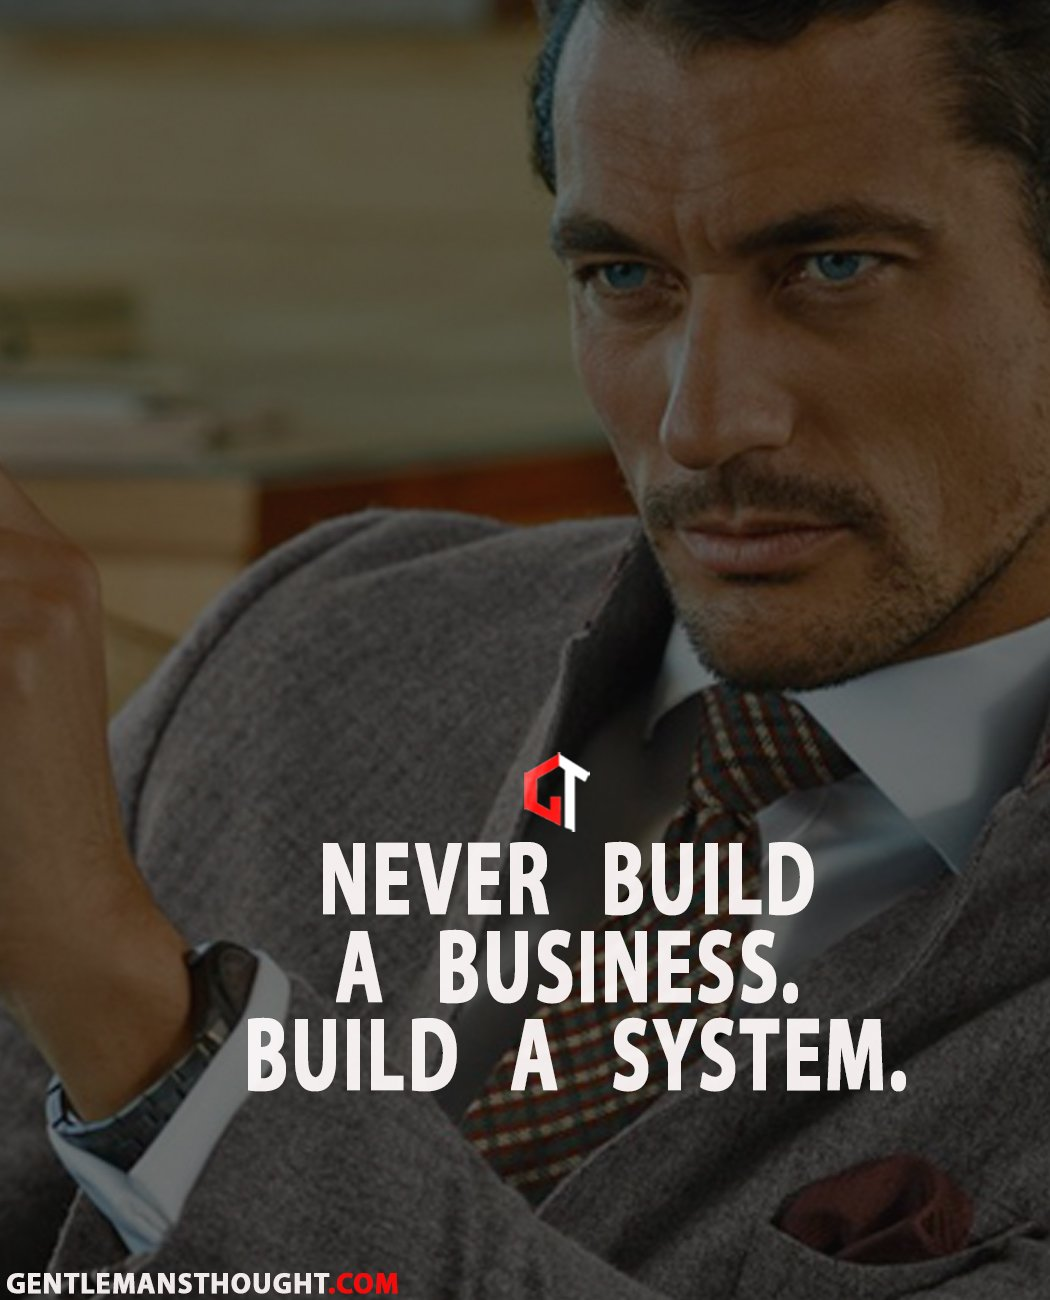 Never build a business. Build a system.